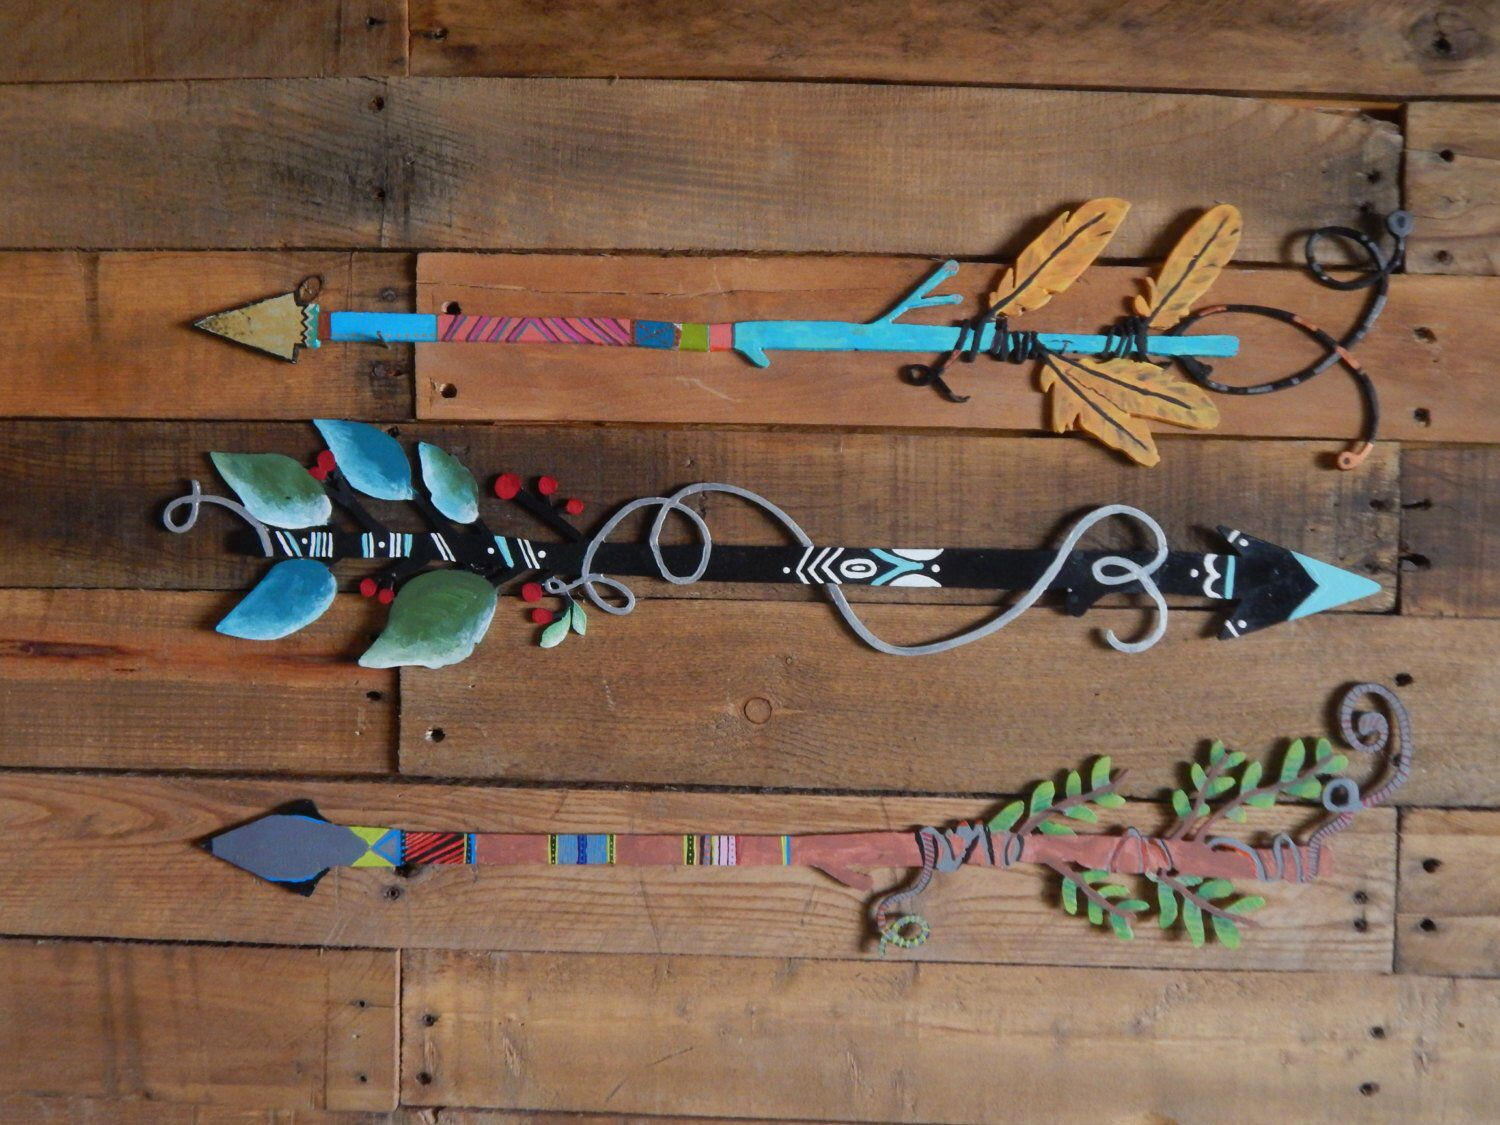 Western Metal Wall Art – Boho Decor – Hand Painted Arrows Inside Brown Metal Tribal Arrow Wall Decor (View 19 of 30)